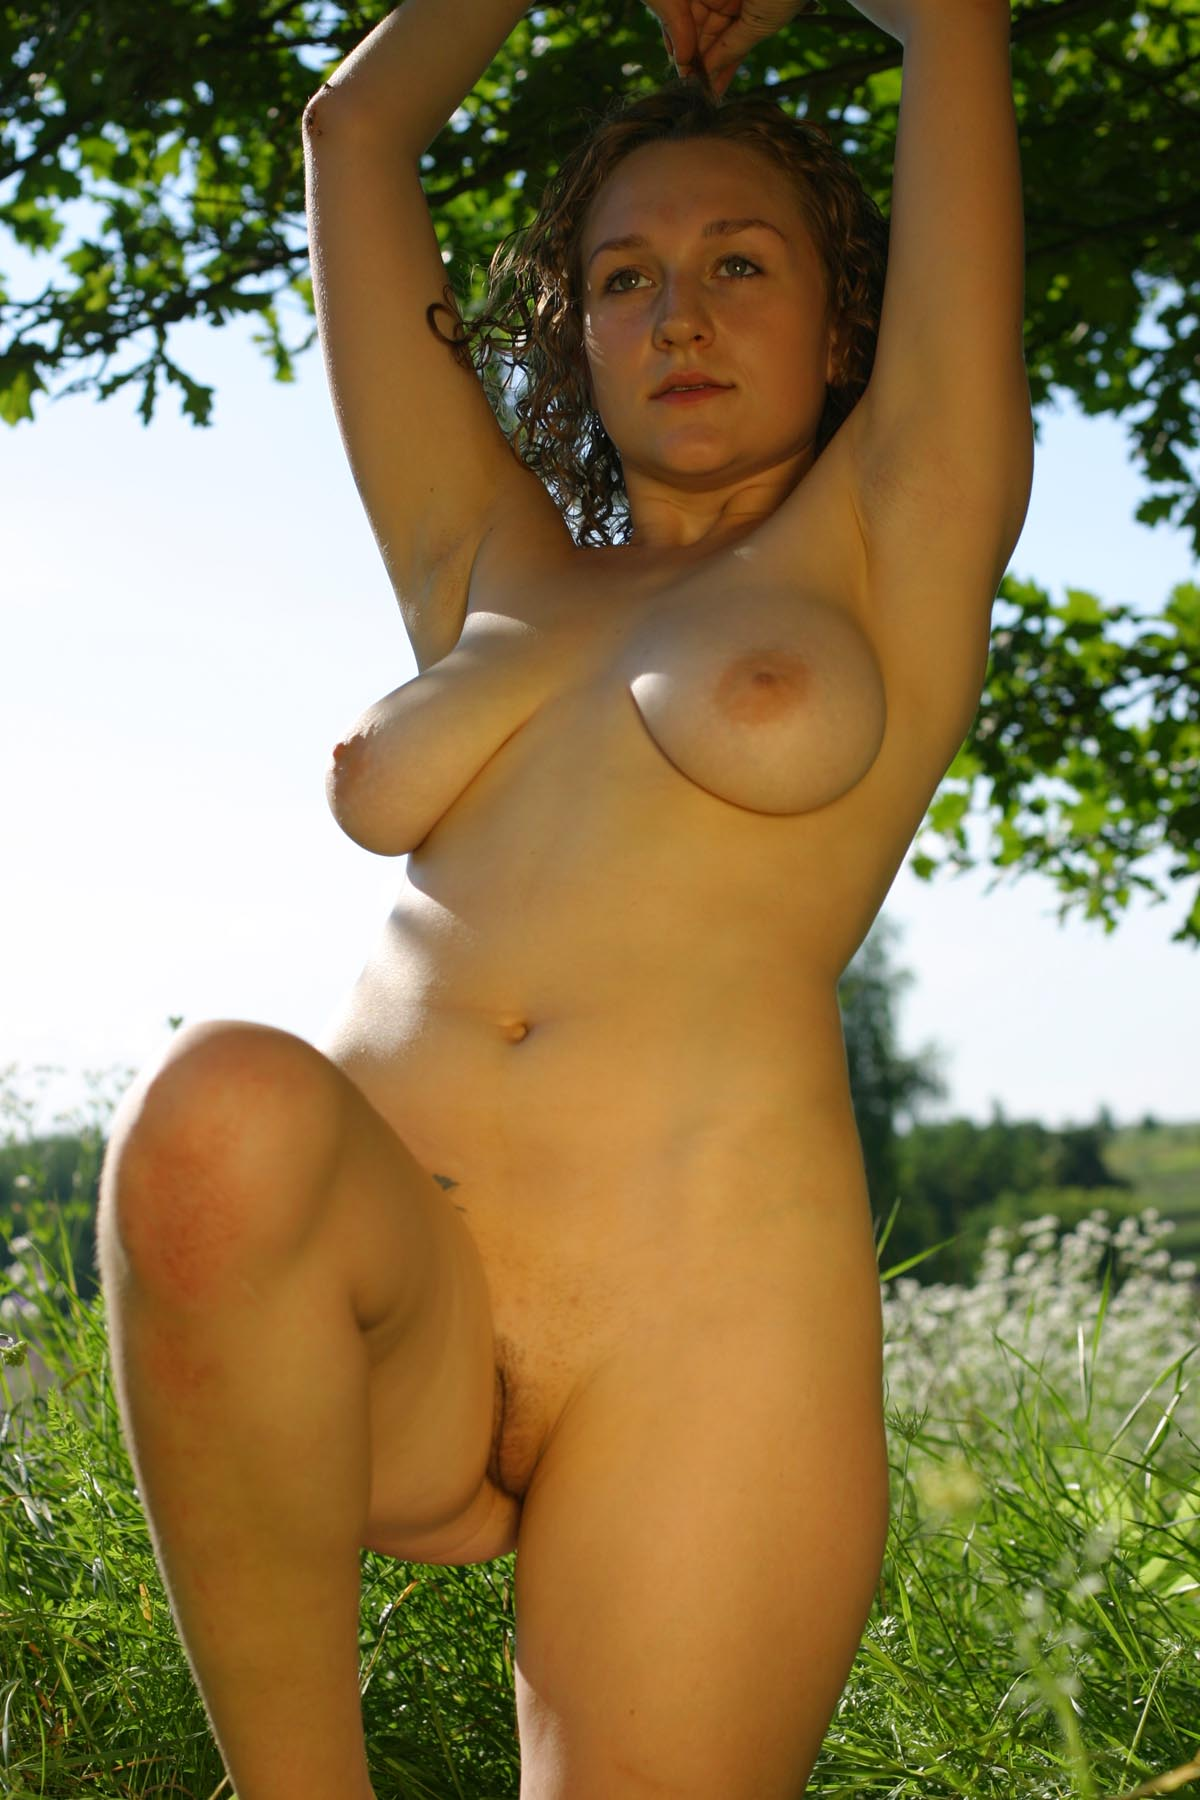 curly russian girl posing naked outdoors russian sexy girls